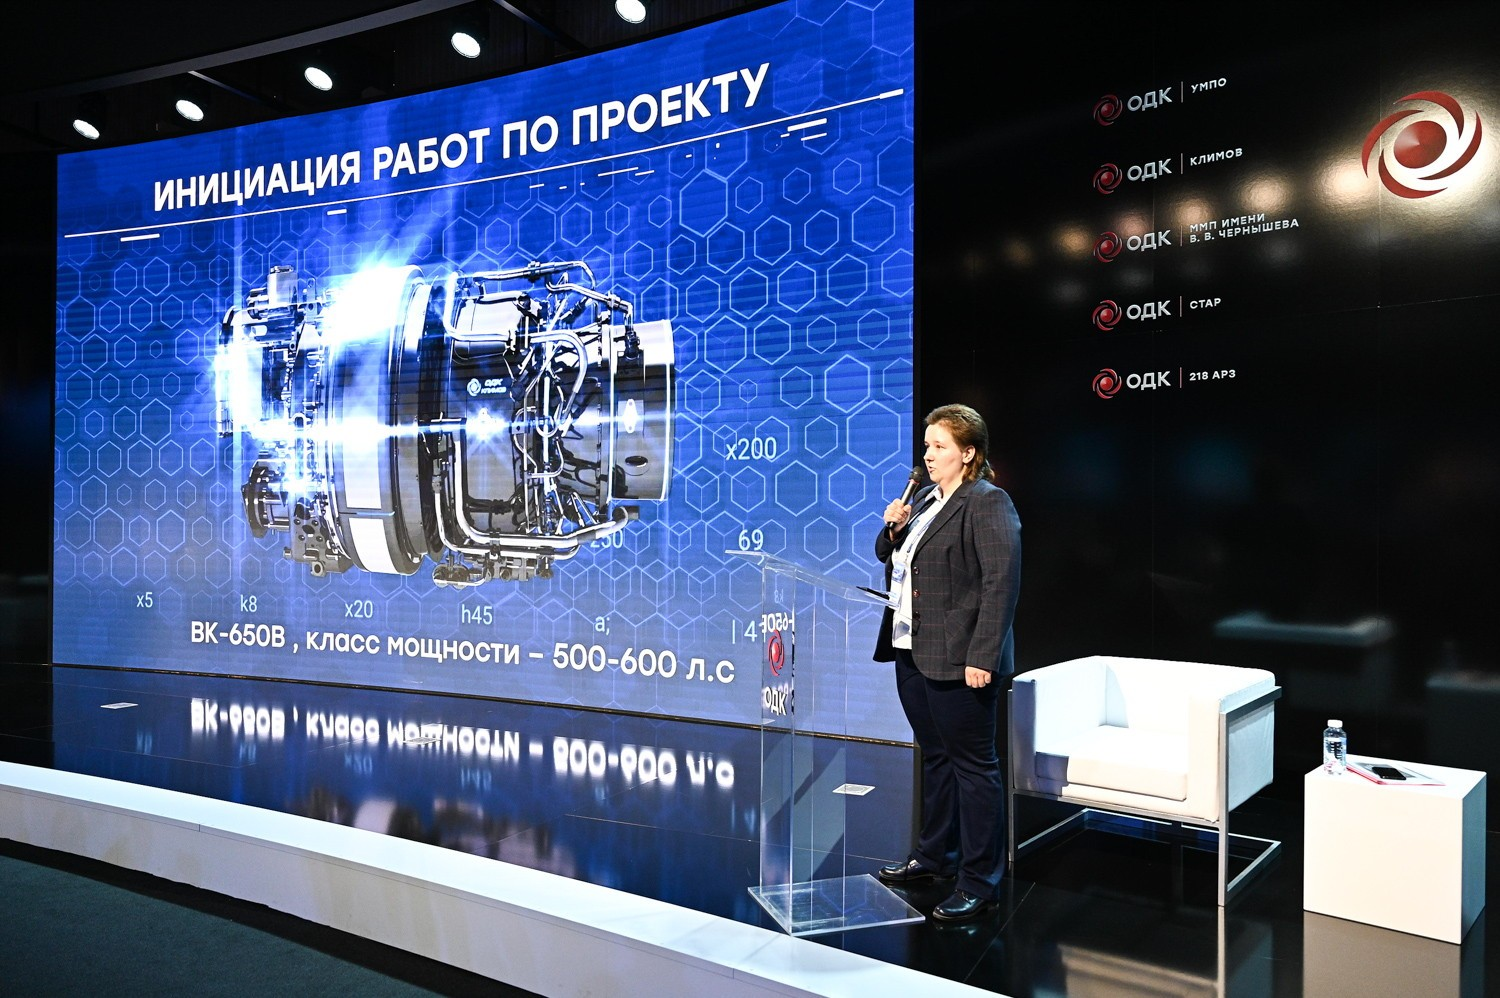 Russia Eyes Hybrid Electric Aircraft Propulsion